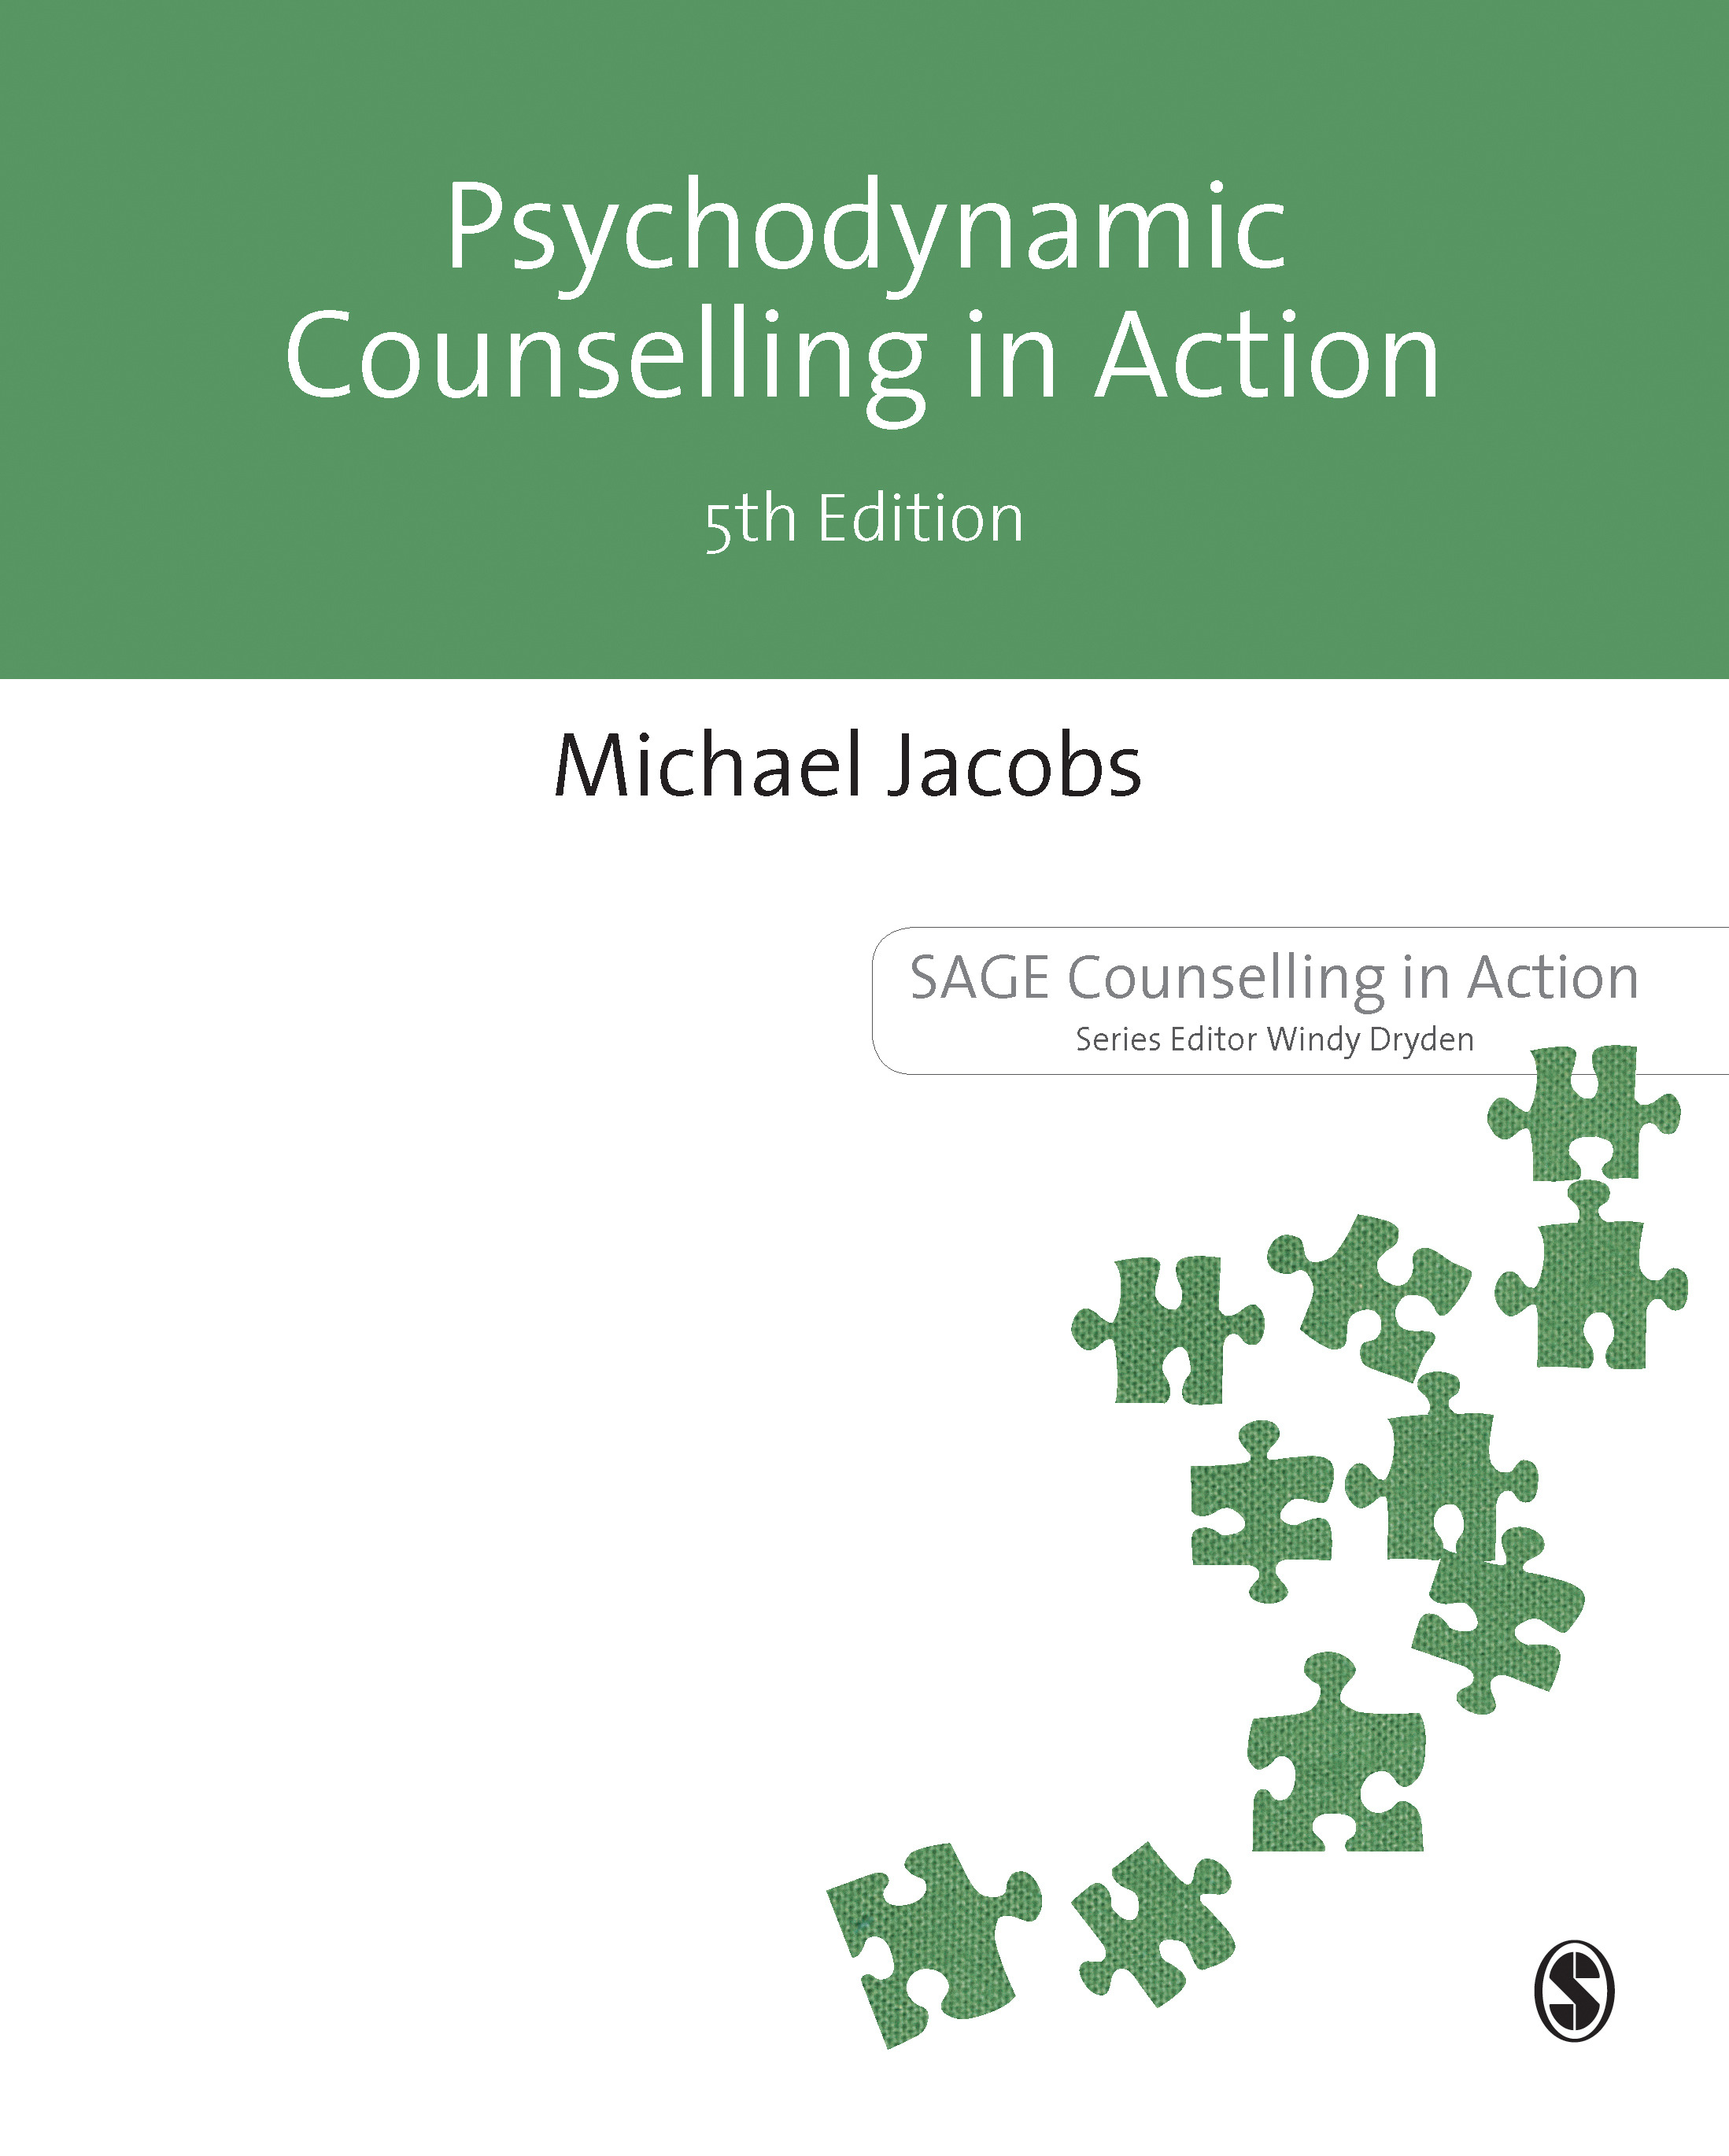 Psychodynamic Counselling in Action book cover image